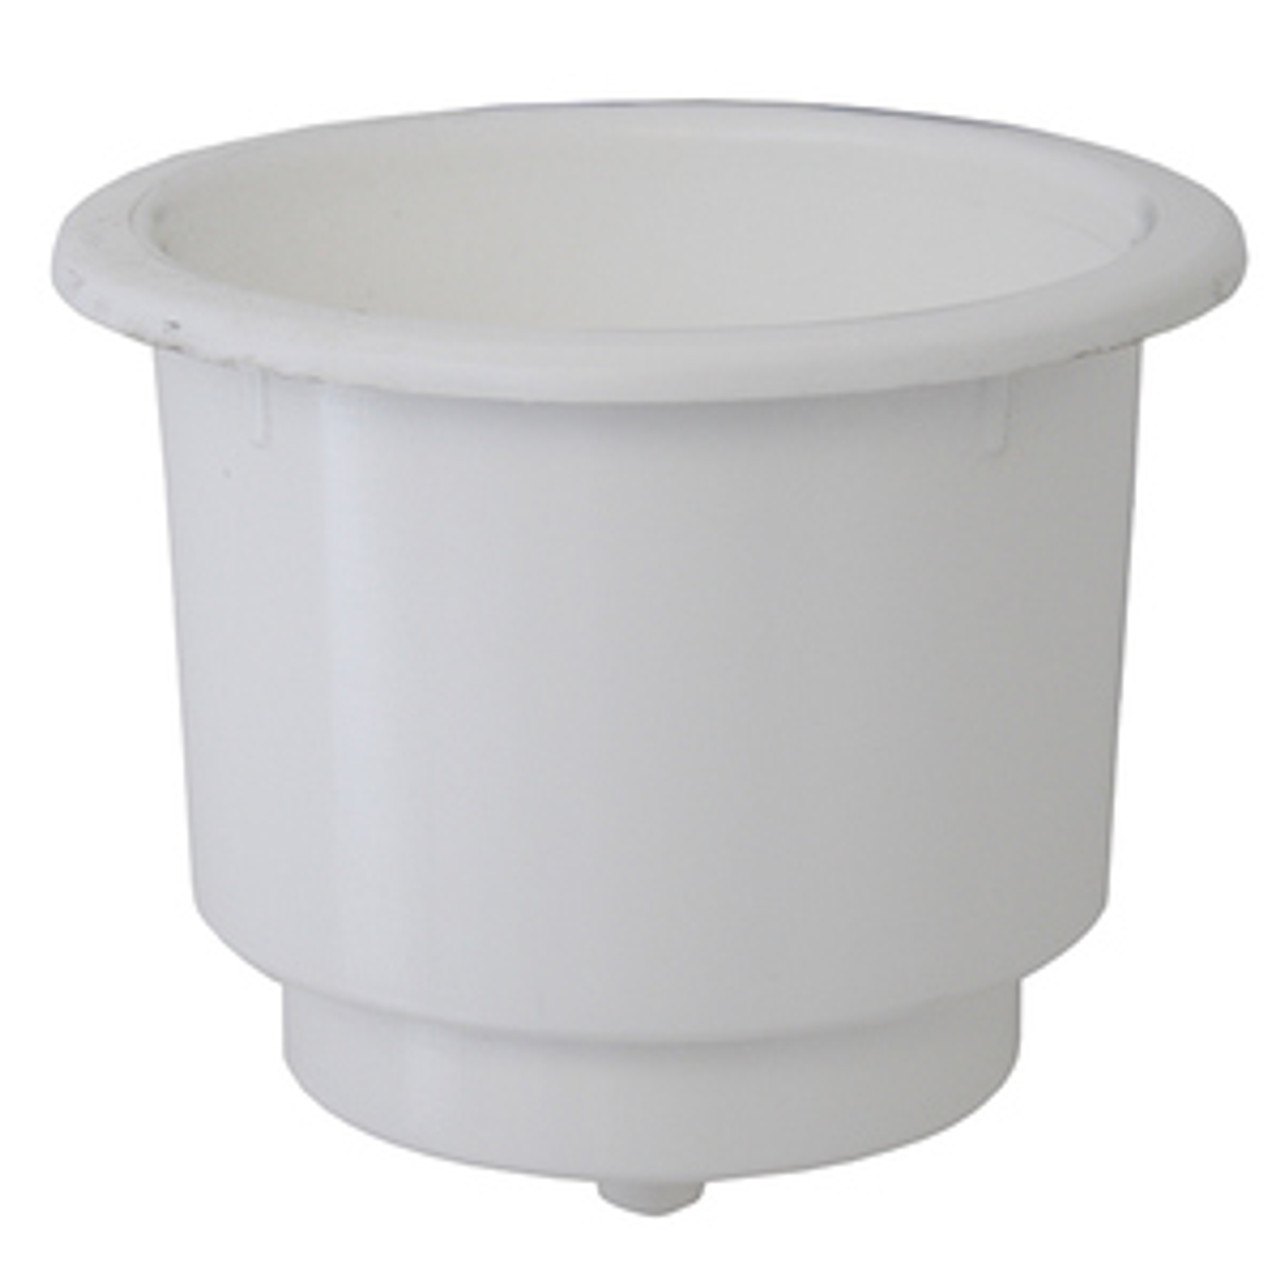 Cup Holder - WHITE Plastic - Sold Each